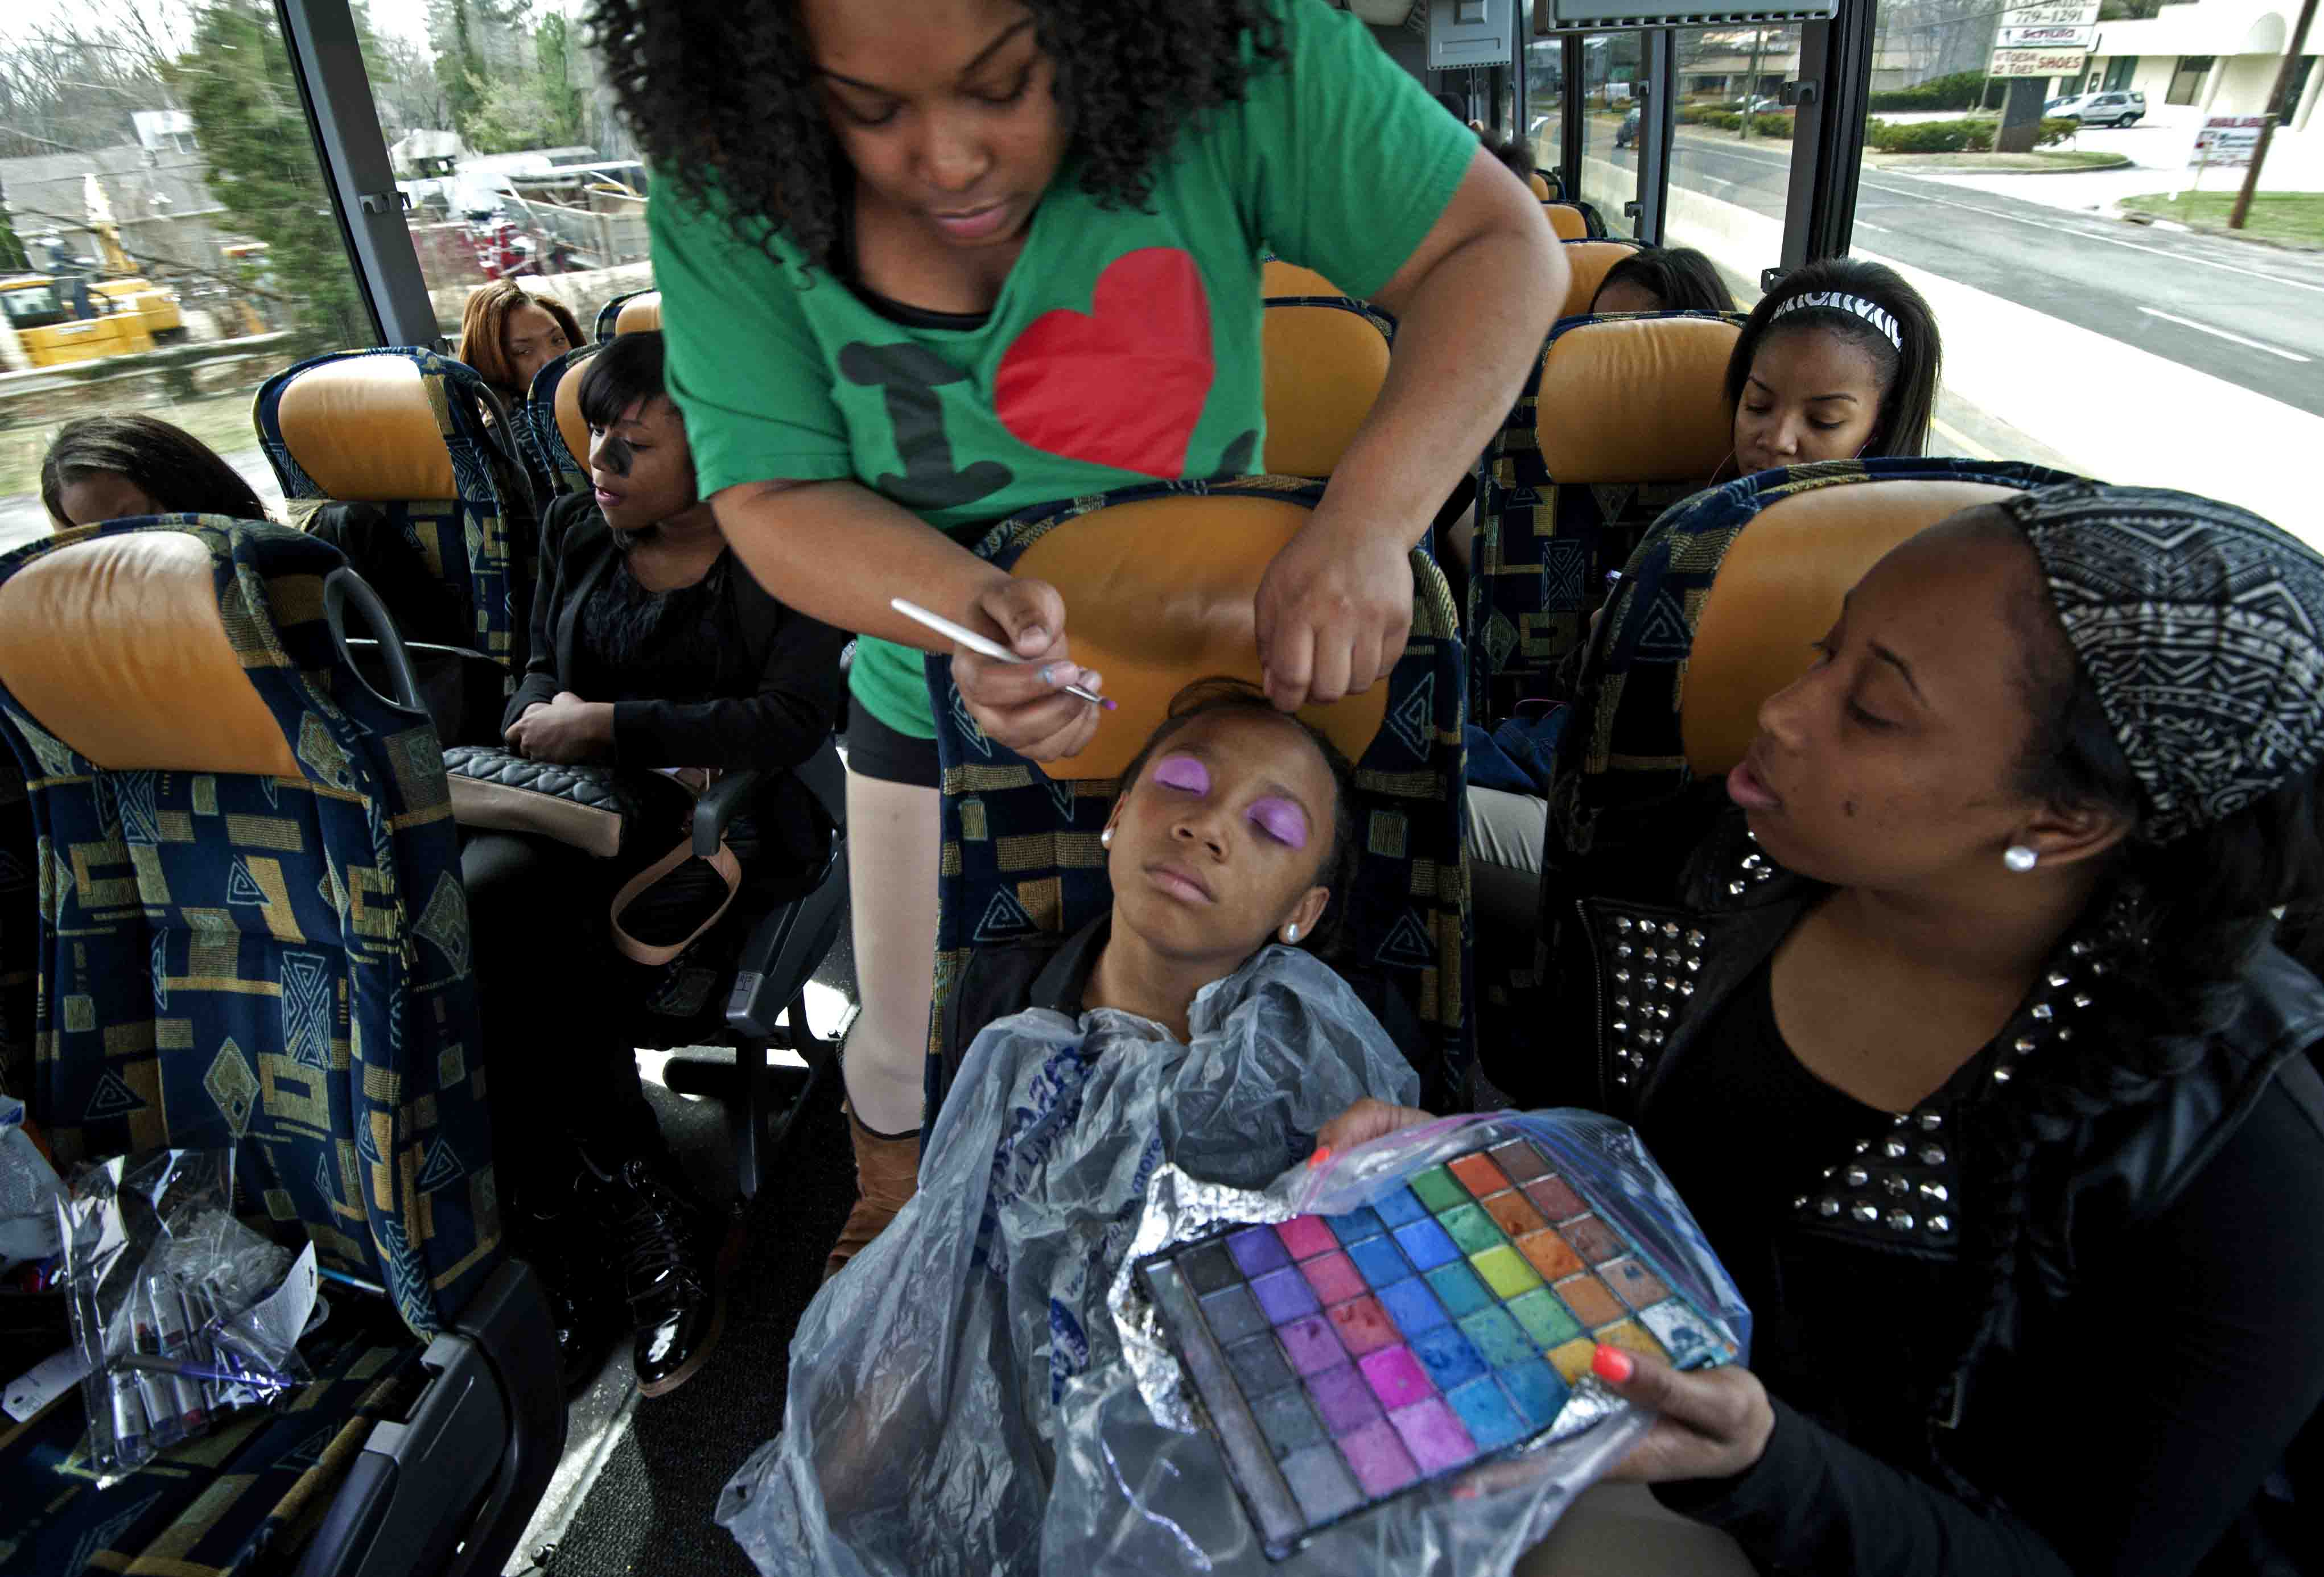 1. Members of the team get made up on the way to a taping in New York City. / 2. The team waits nervously to appear on Dancing with the Stars in 2013.